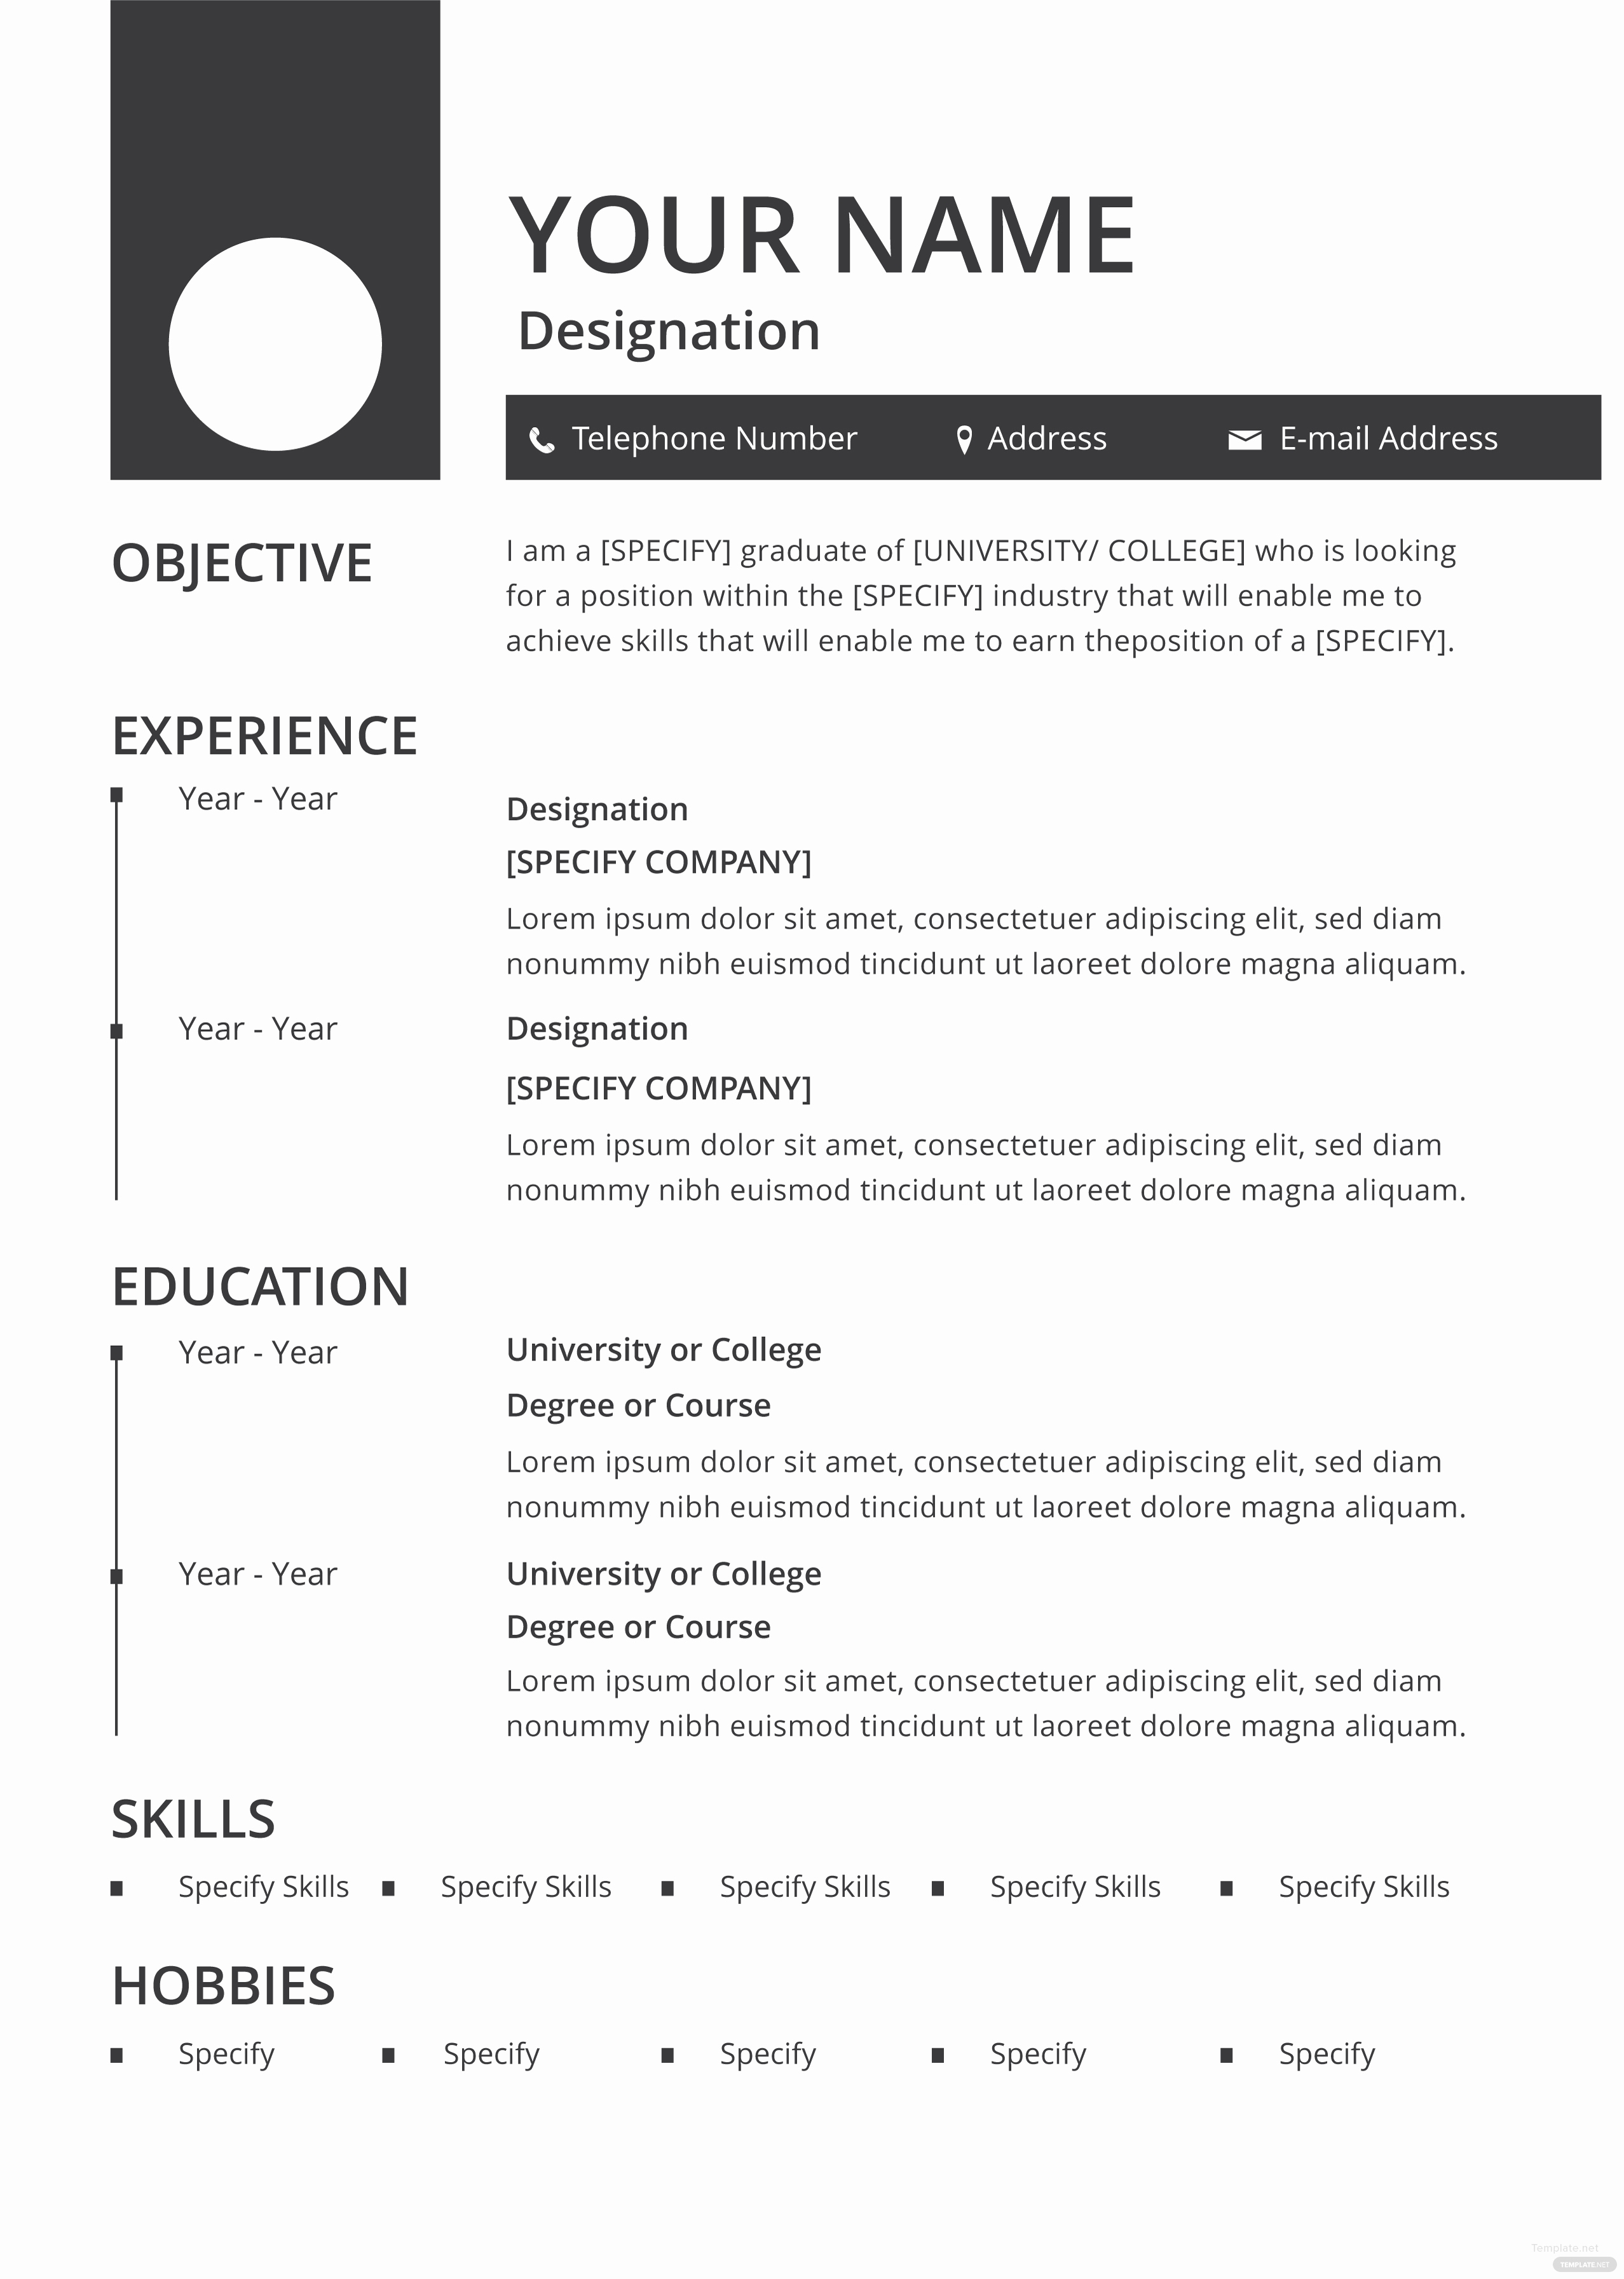 Free Simple Resume Templates Inspirational Free Blank Resume and Cv Template In Adobe Shop